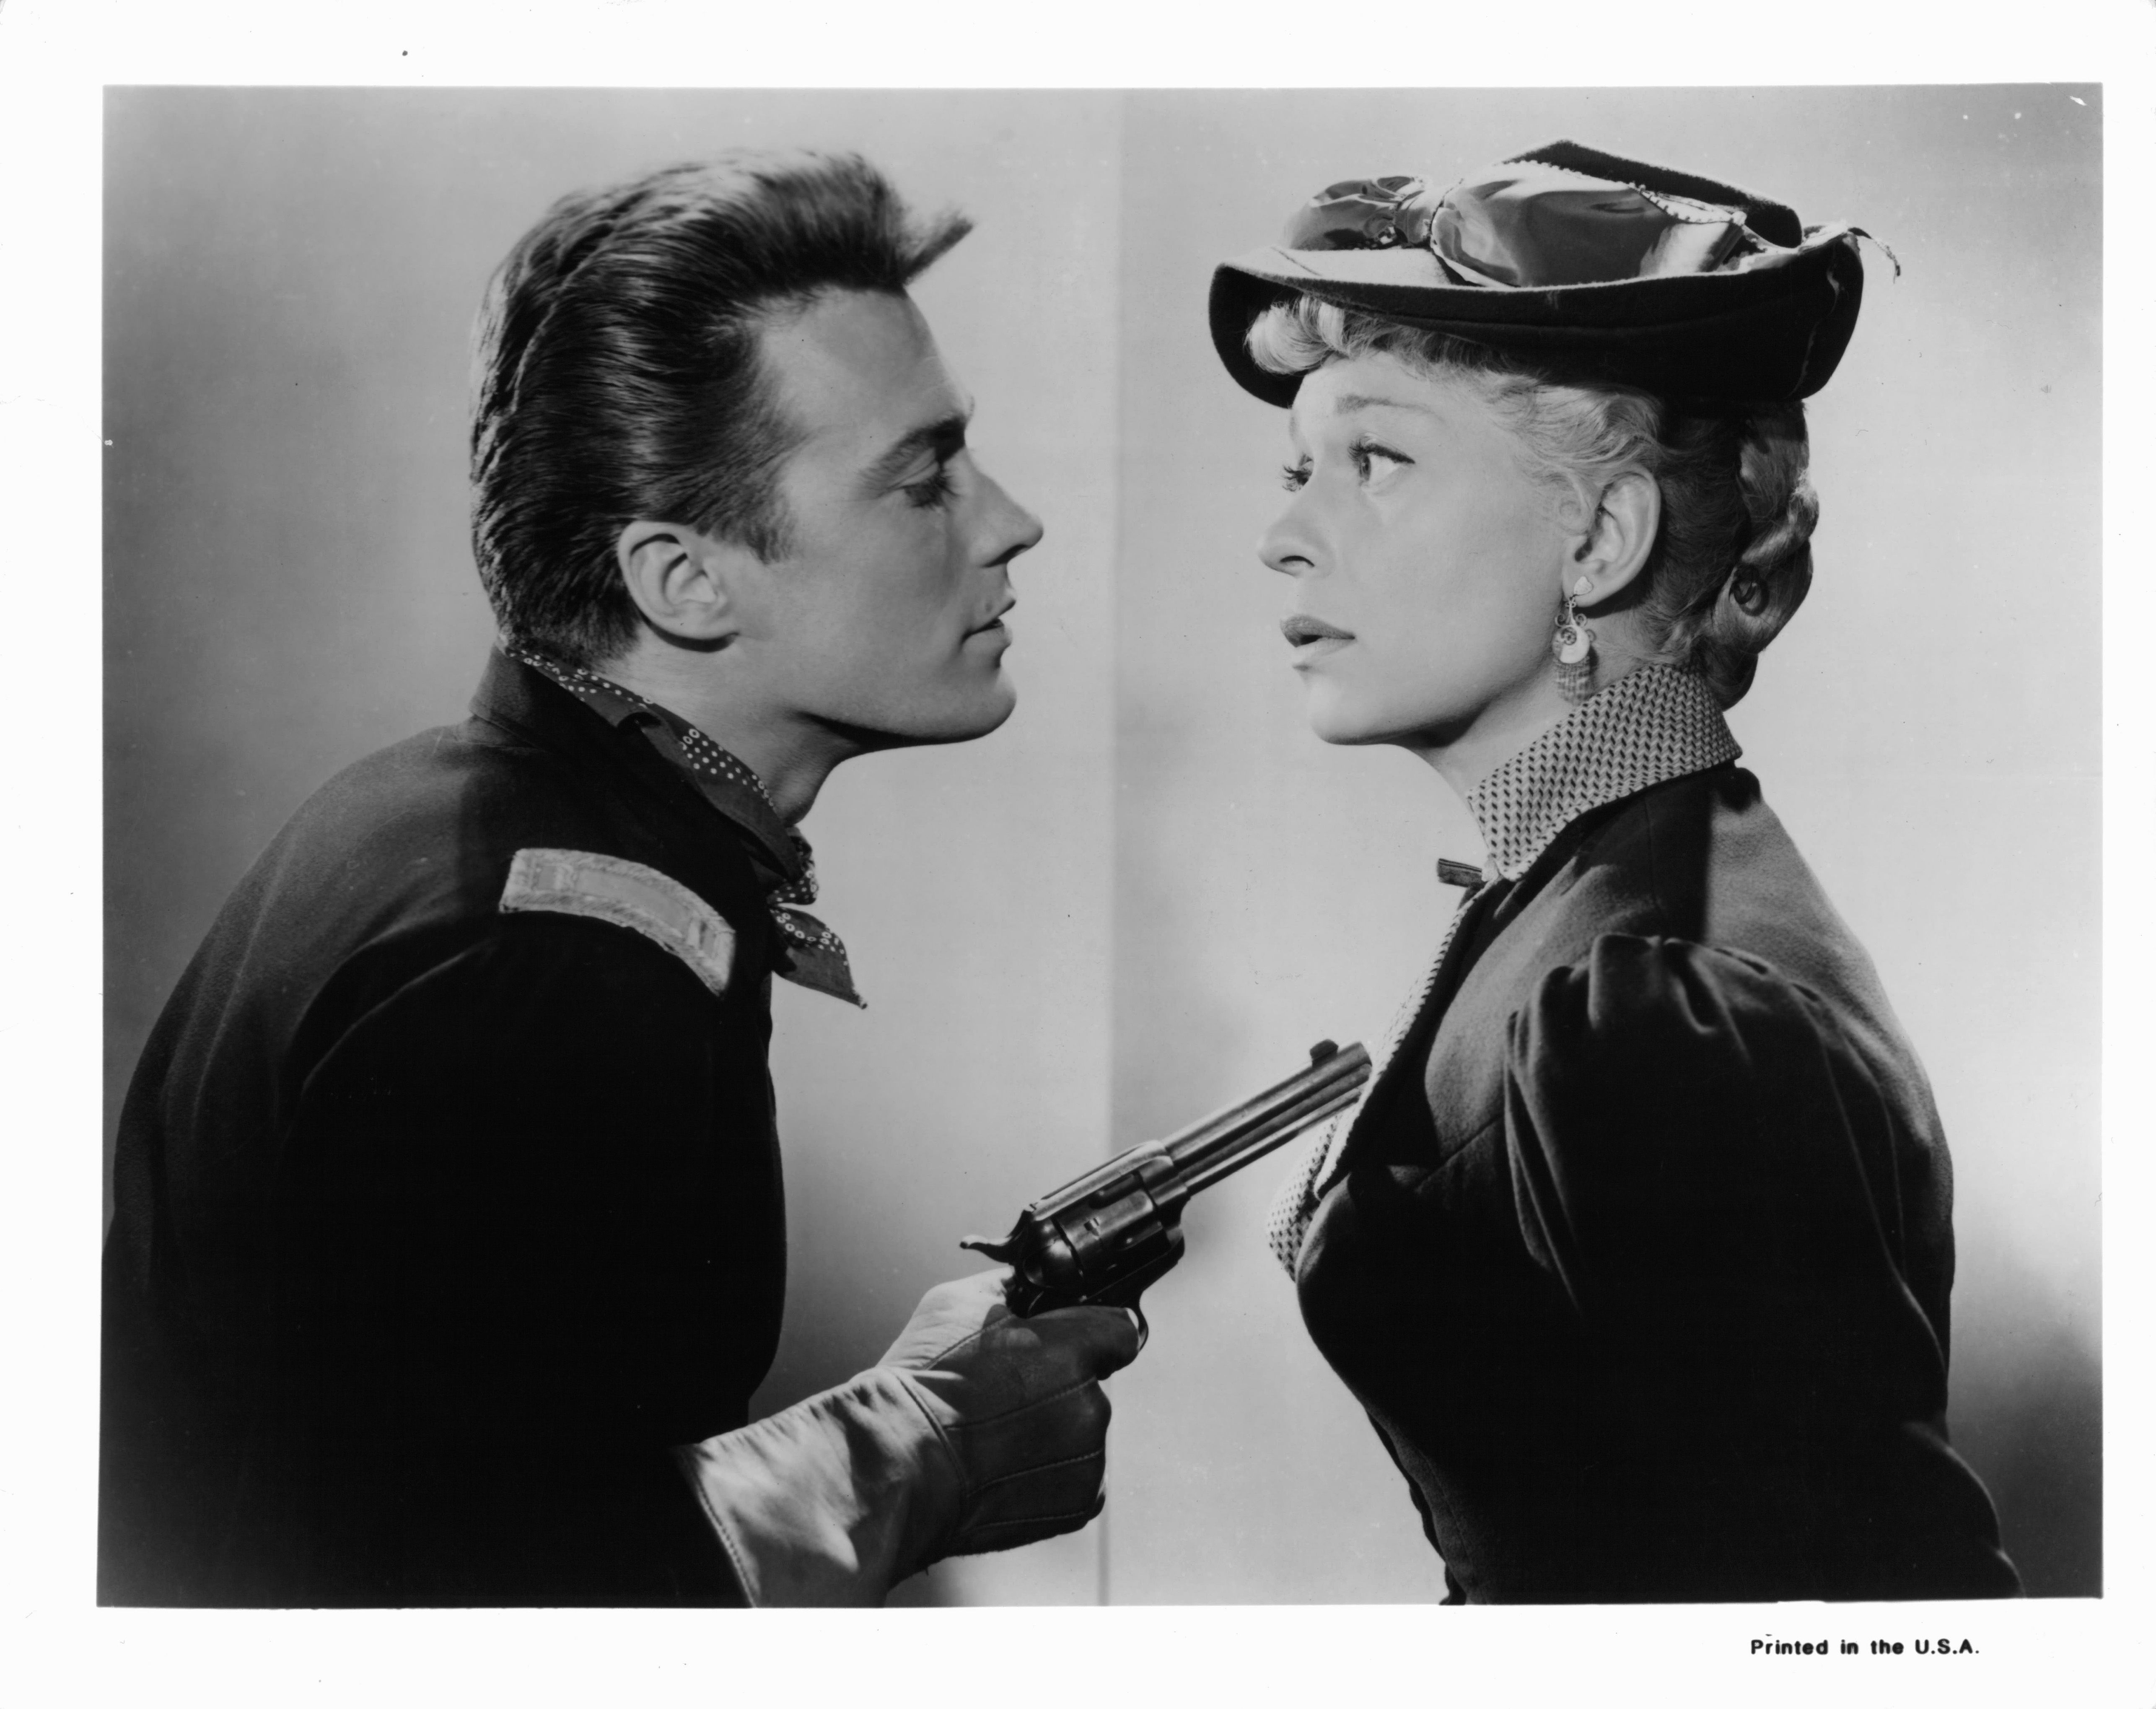 Clint Eastwood And Carol Channing In 'The First Traveling Saleslady'